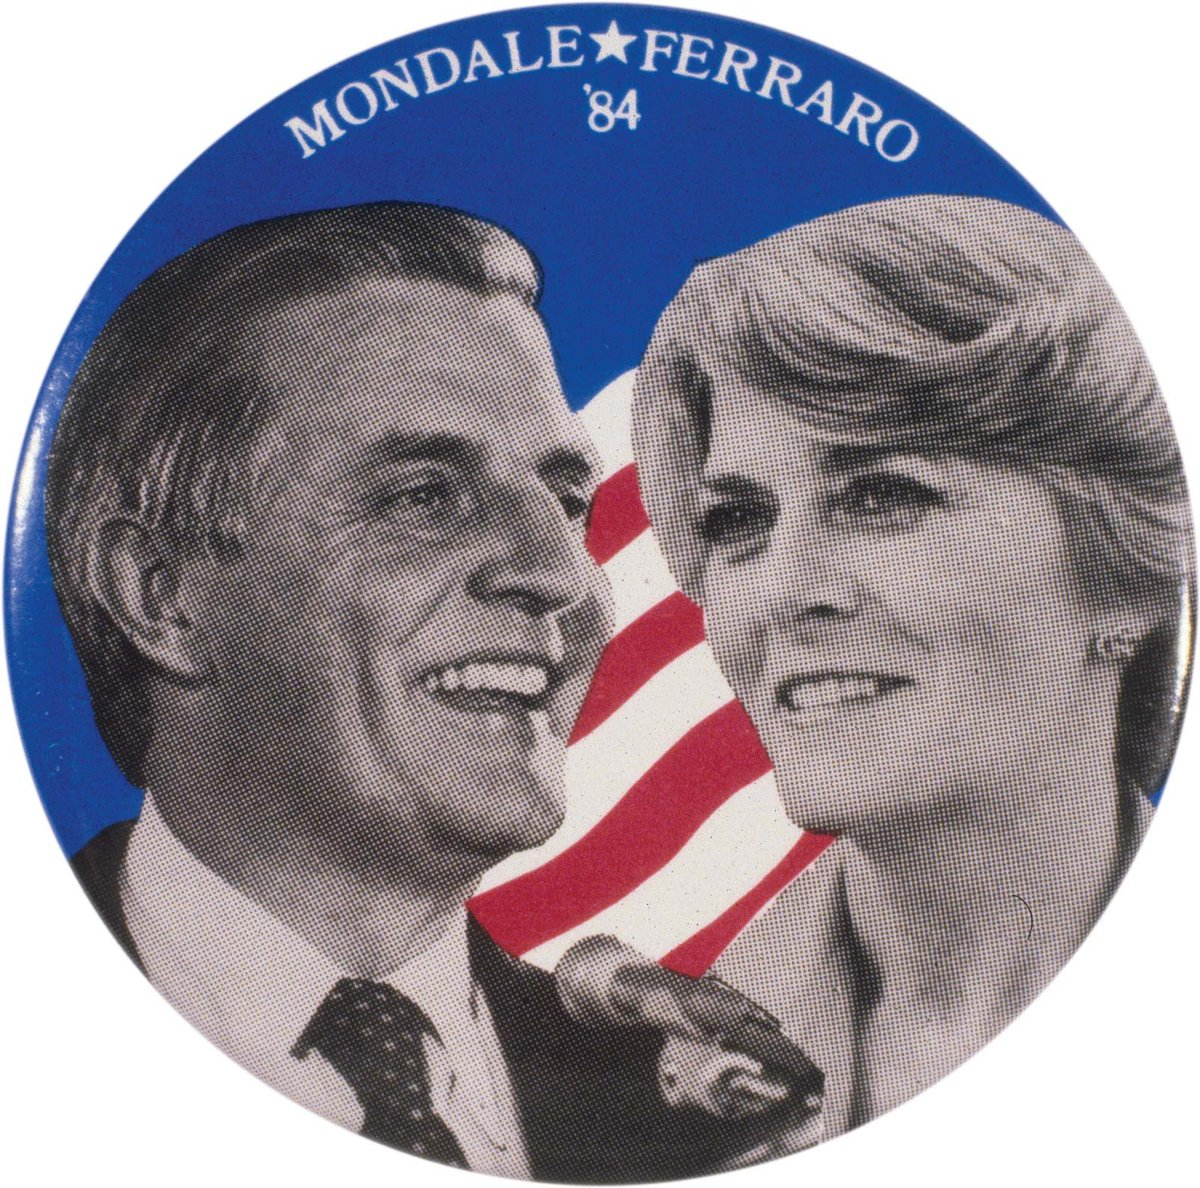 #WalterMondale transformed and redefined the Vice Presidency into the power structure that it is today. He also redefined the role by paving the way for @VP to make history by selecting #GeraldineFerraro as his #RunningMate This will ultimately be his legacy #RIPWalterMondale